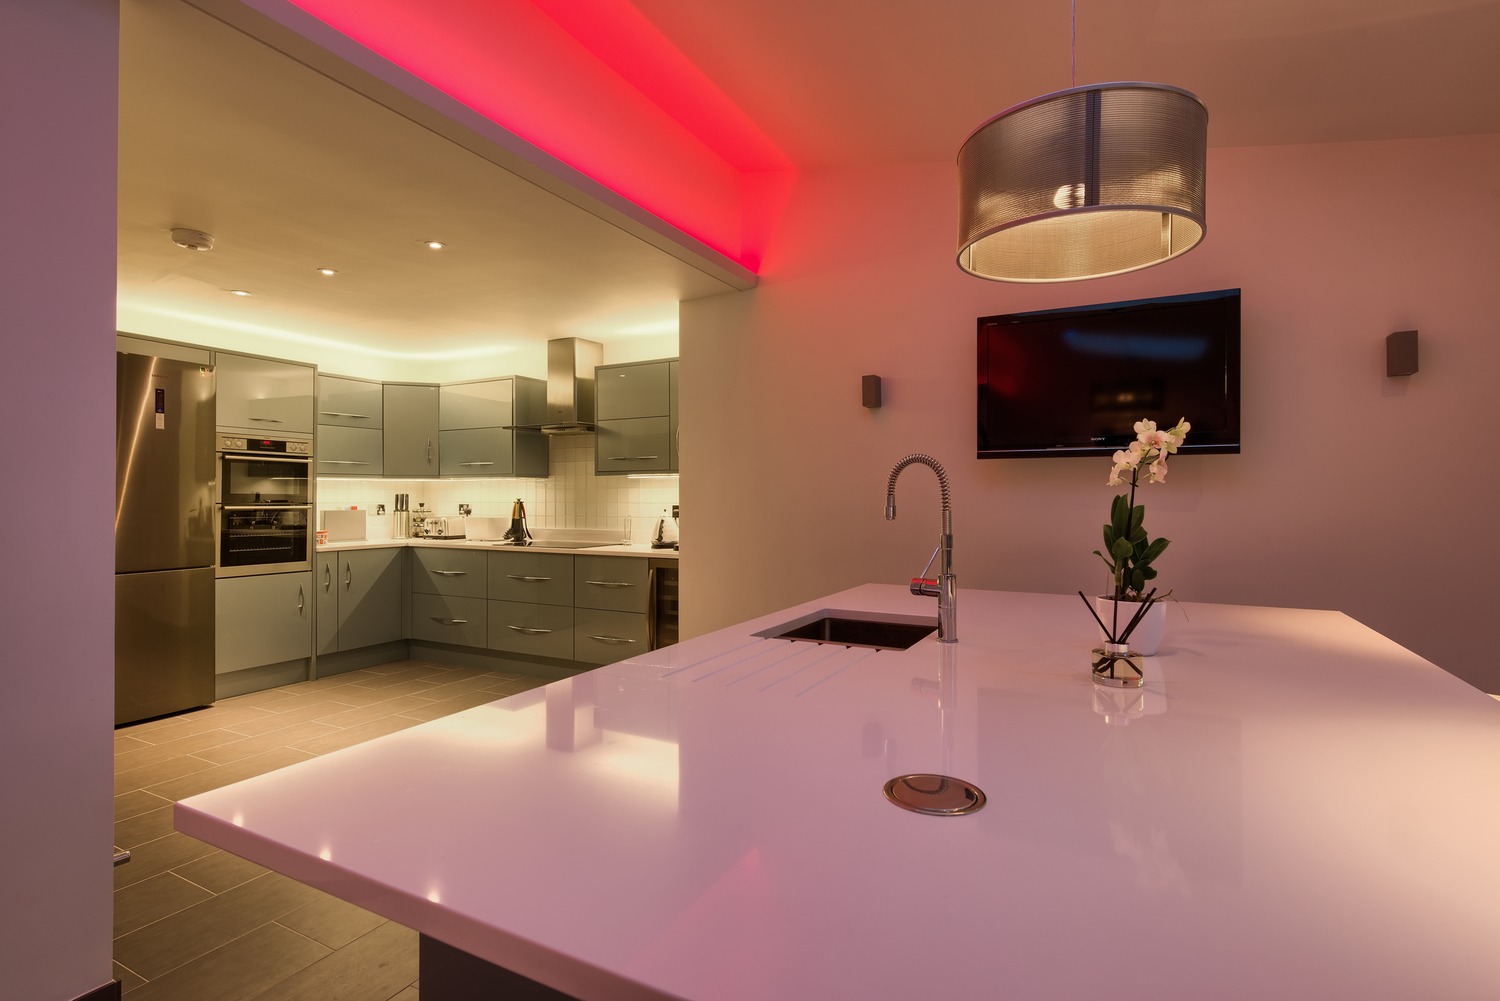 Breakfast table purple light of a lighting house extension by Harvey Norman Architects Cambridge